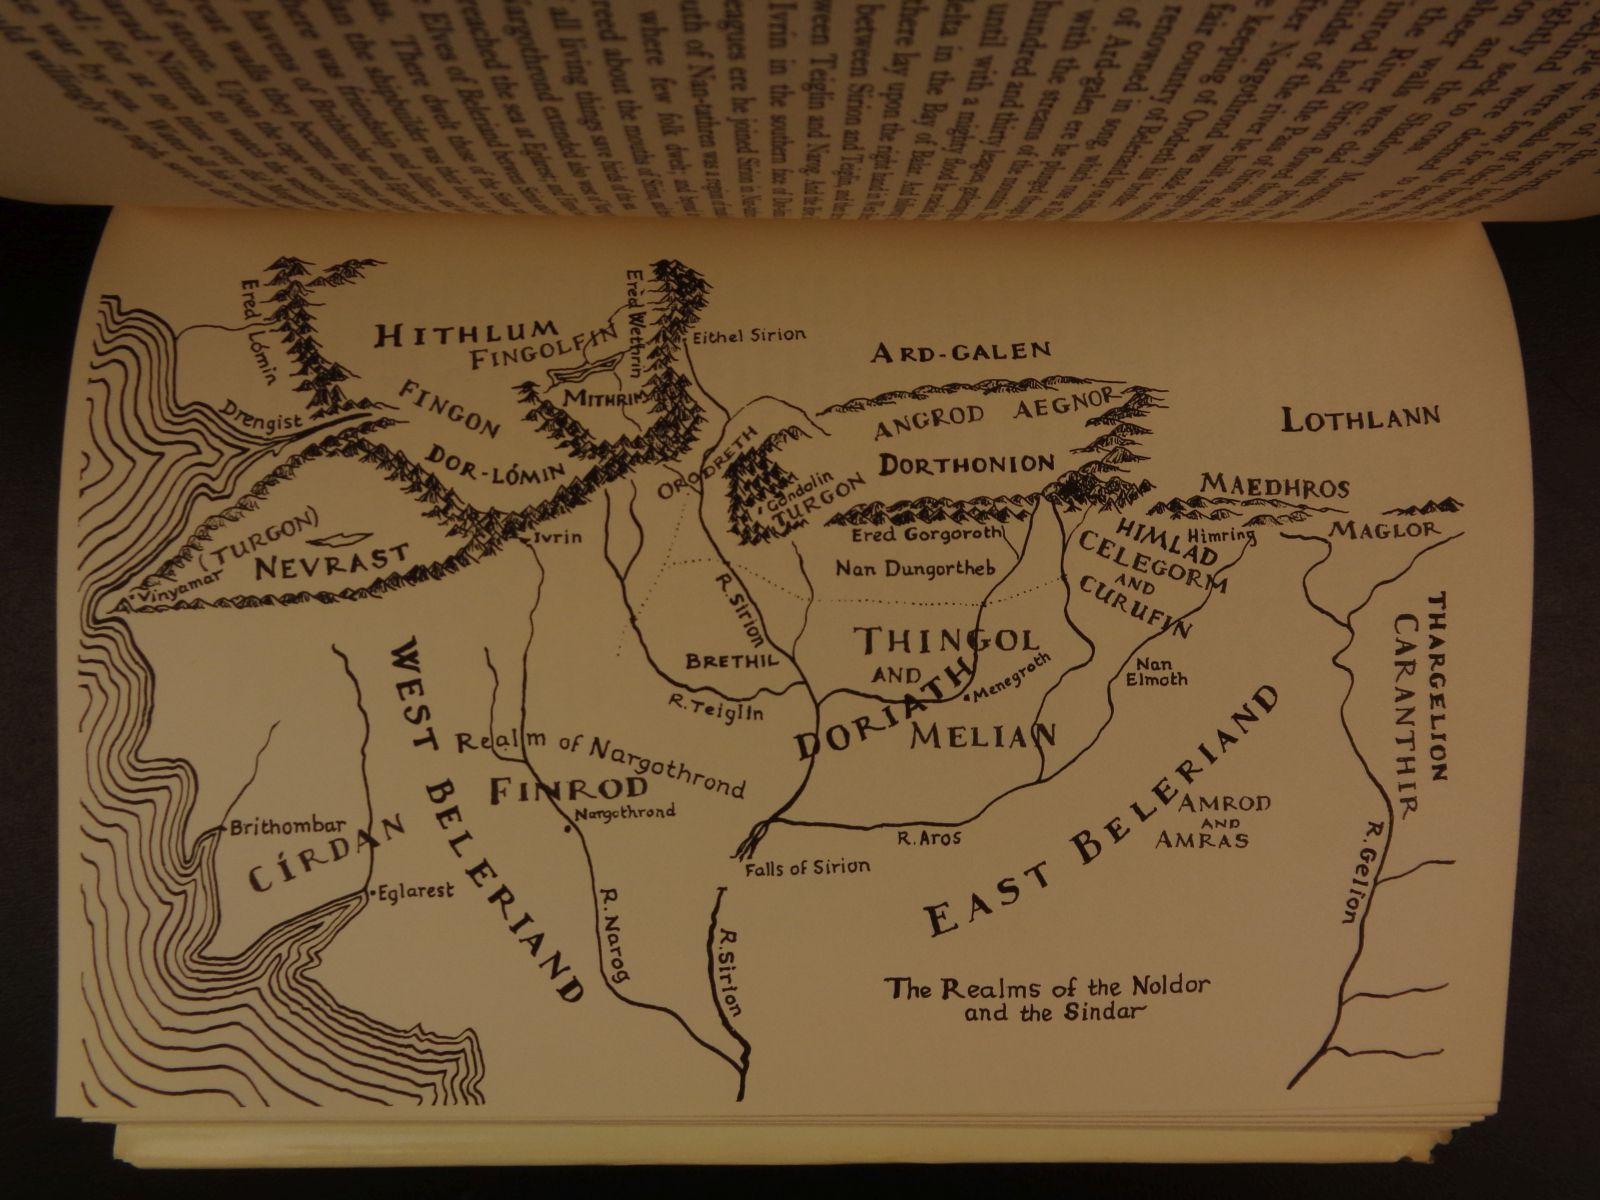 1977 1st Us Ed Silmarillion Jrr Tolkien Lord Of The Rings Middle Earth Map